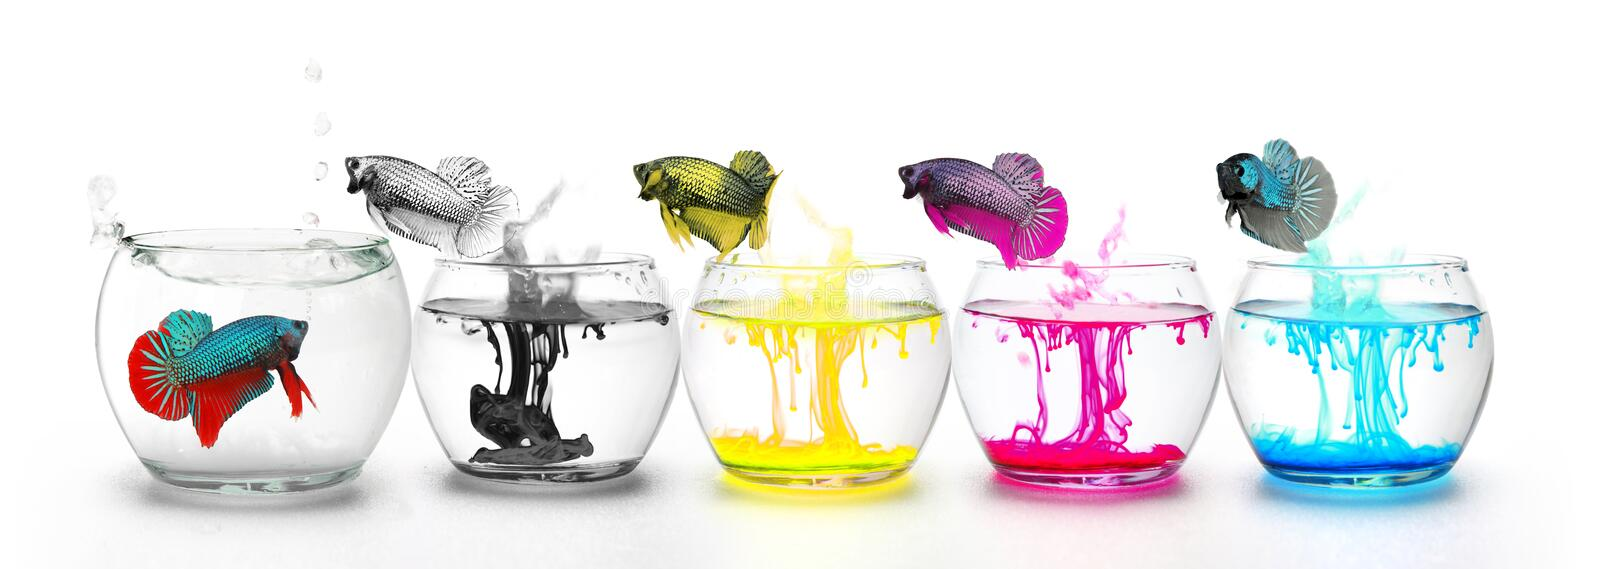 Fighting Fishs jumping through four Primary colors. They are Fighting Fish jumping through four Primary colors CMYK, White Background royalty free stock photo